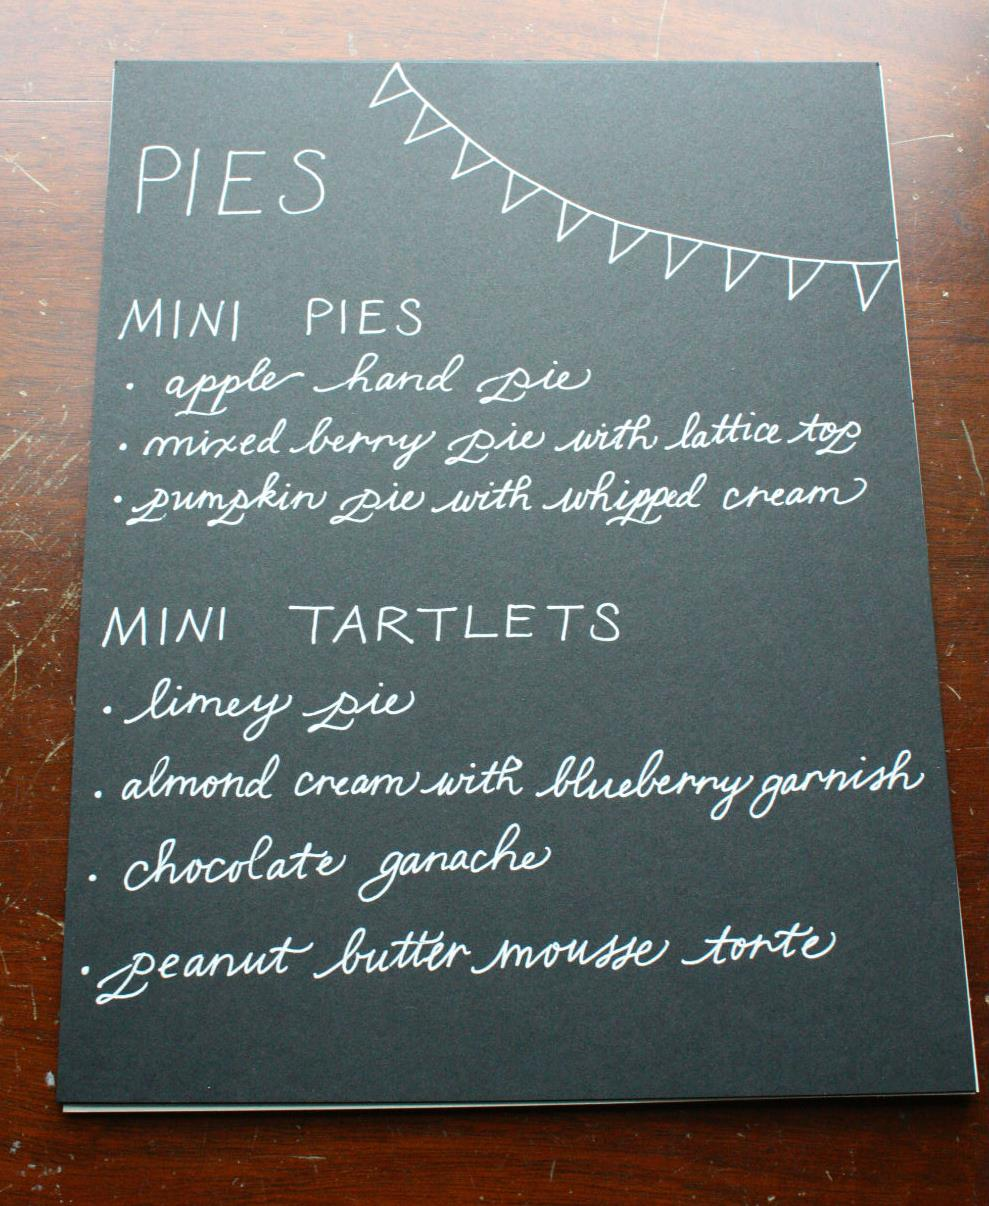 Pie table menu.